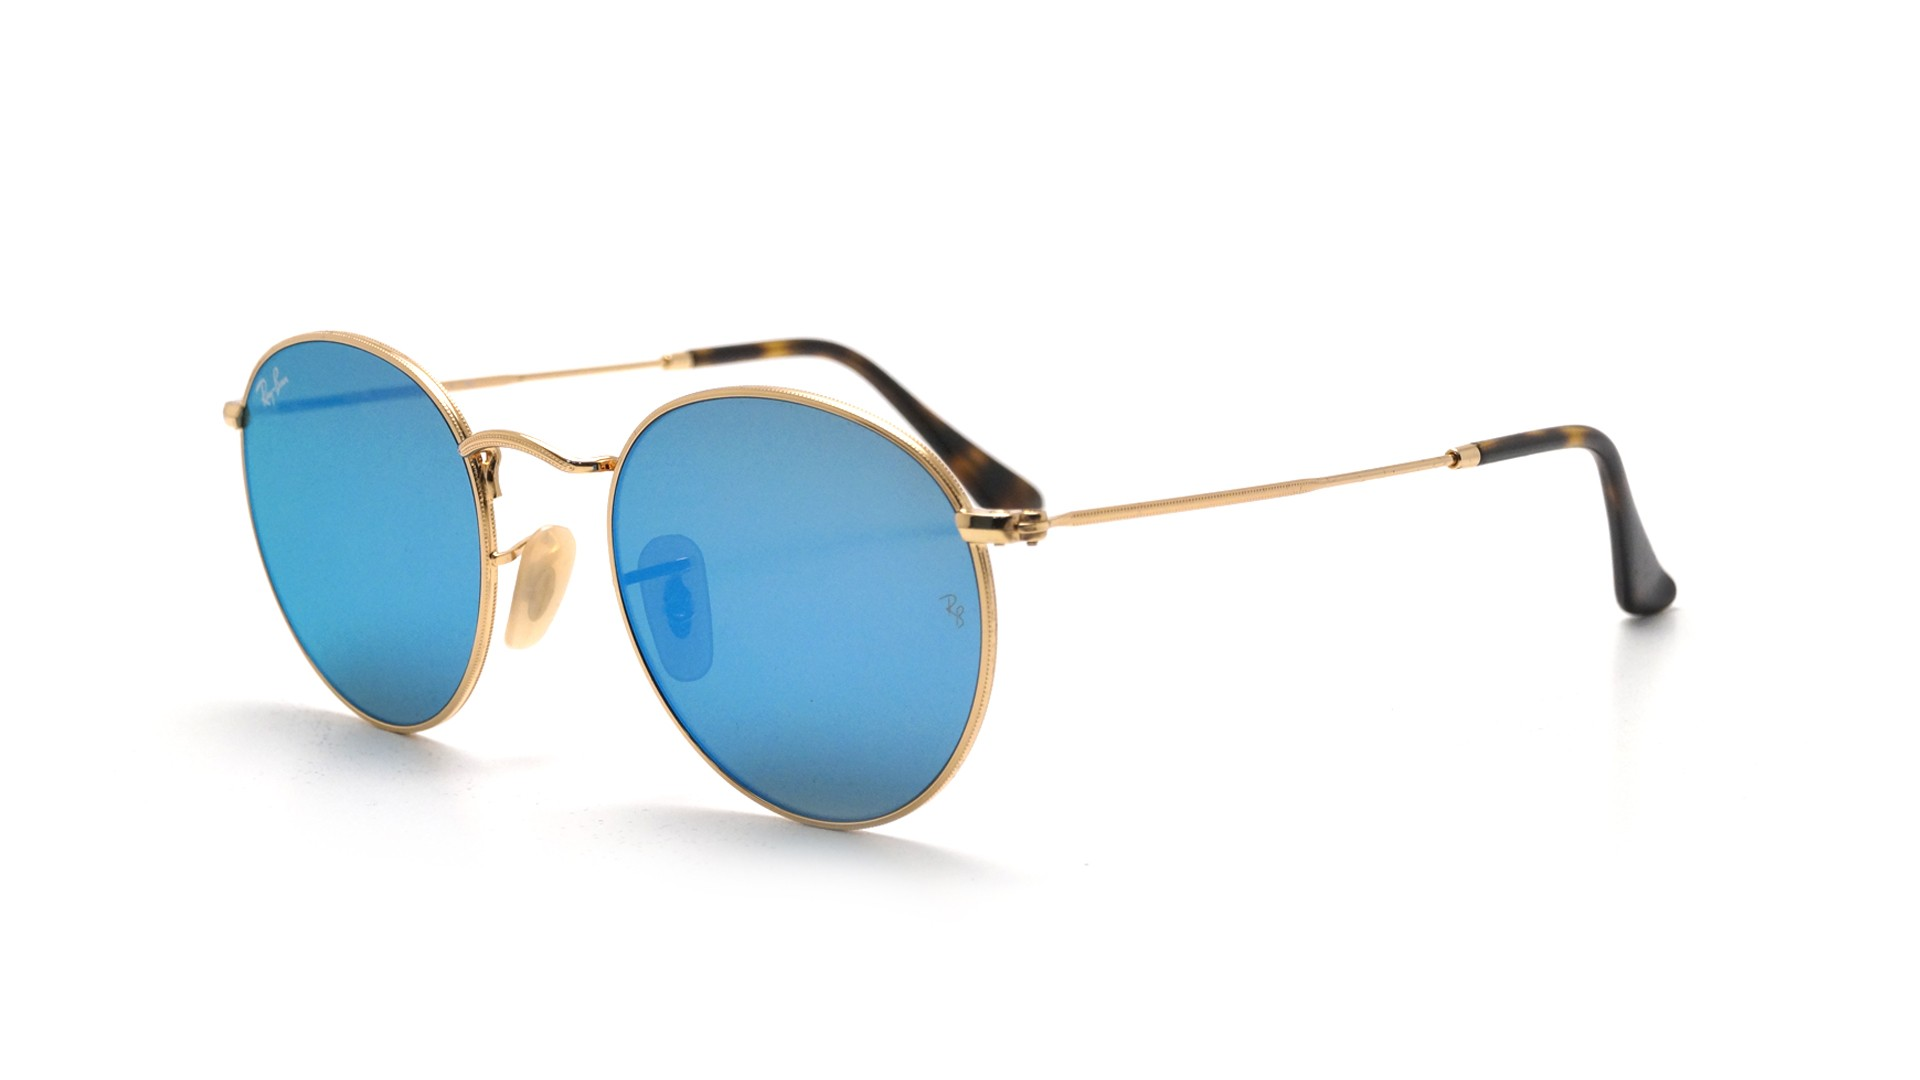 89fcc87067e43 Sunglasses Ray-Ban Round Metal Round Flat Lenses Gold RB3447N 001 9O 47-21  Small Flash